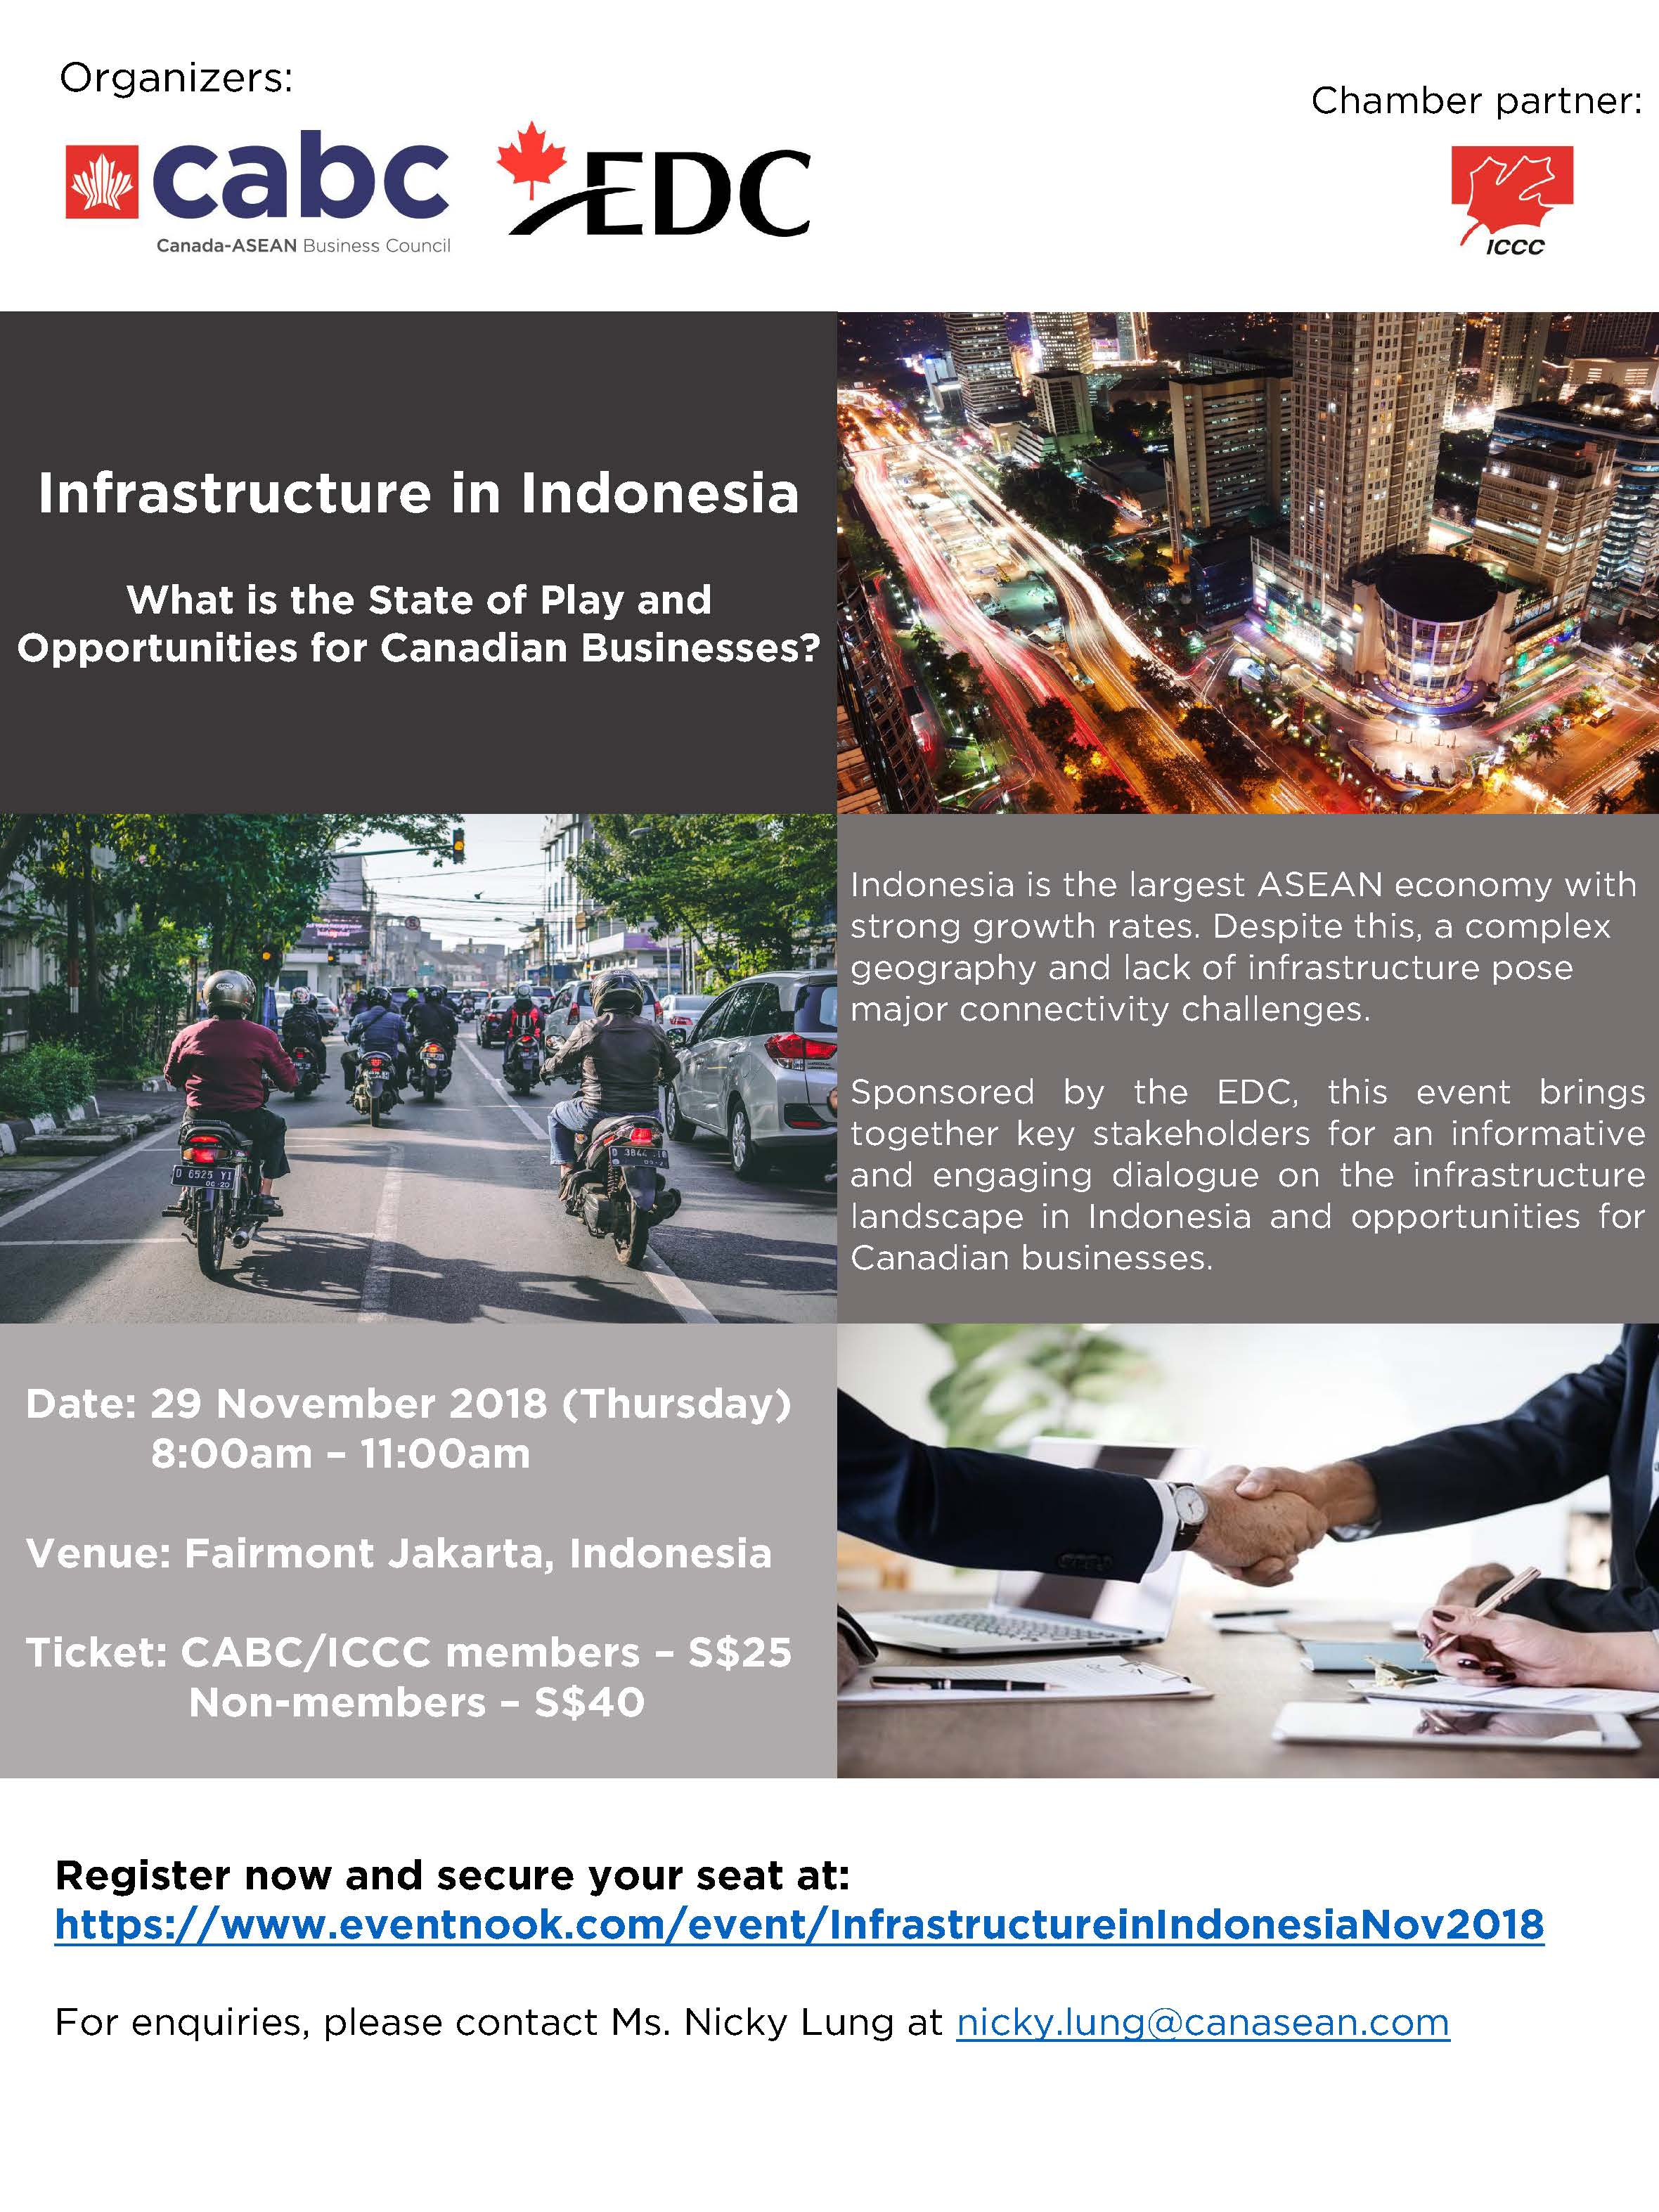 Infrastructure in Indonesia - Event Invite